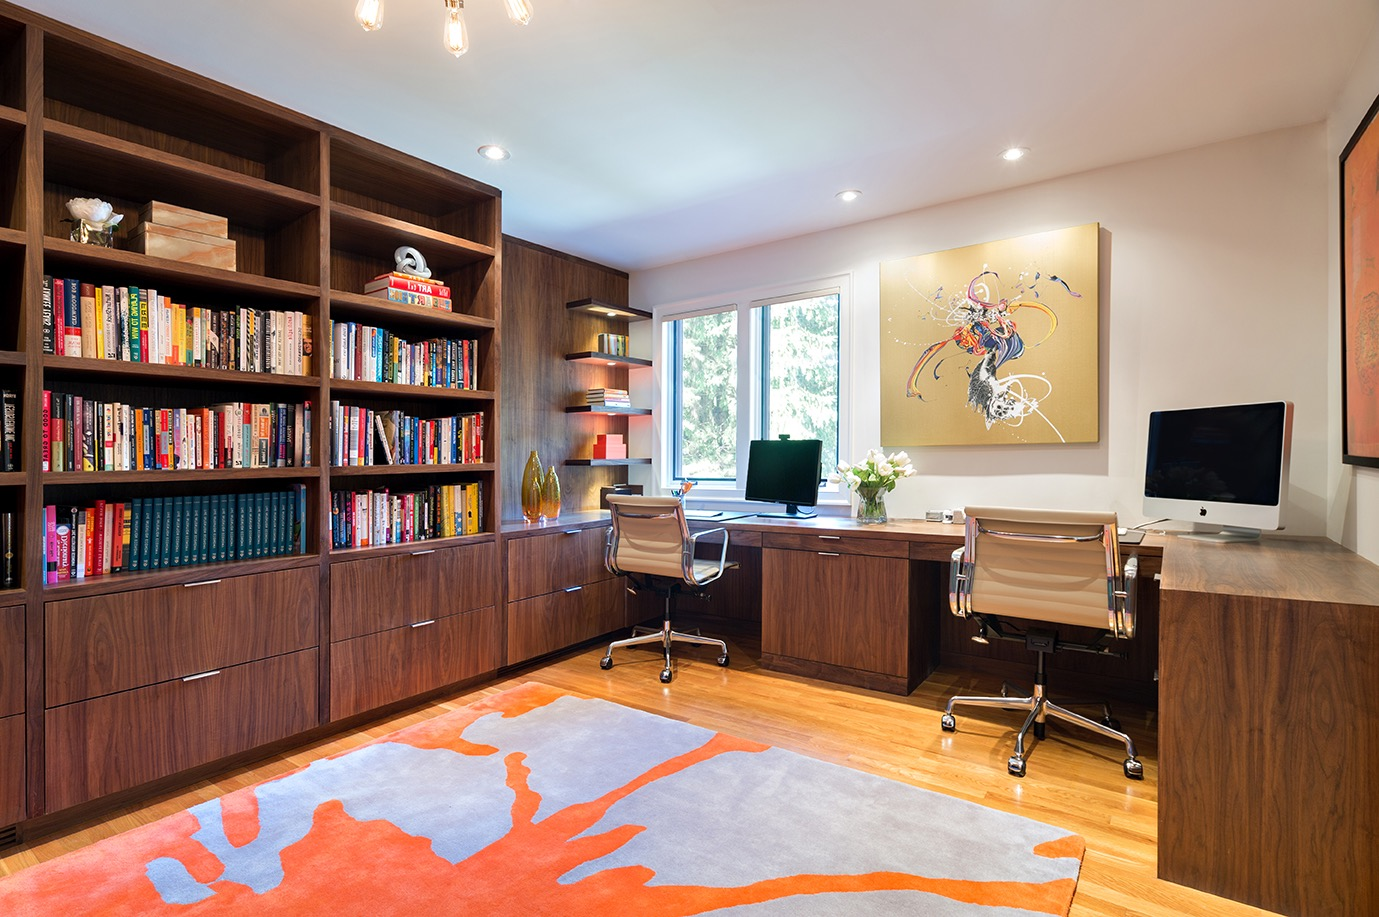 Contemporary Home Office With Built In Cabinet And Bookshelves (View 3 of 50)